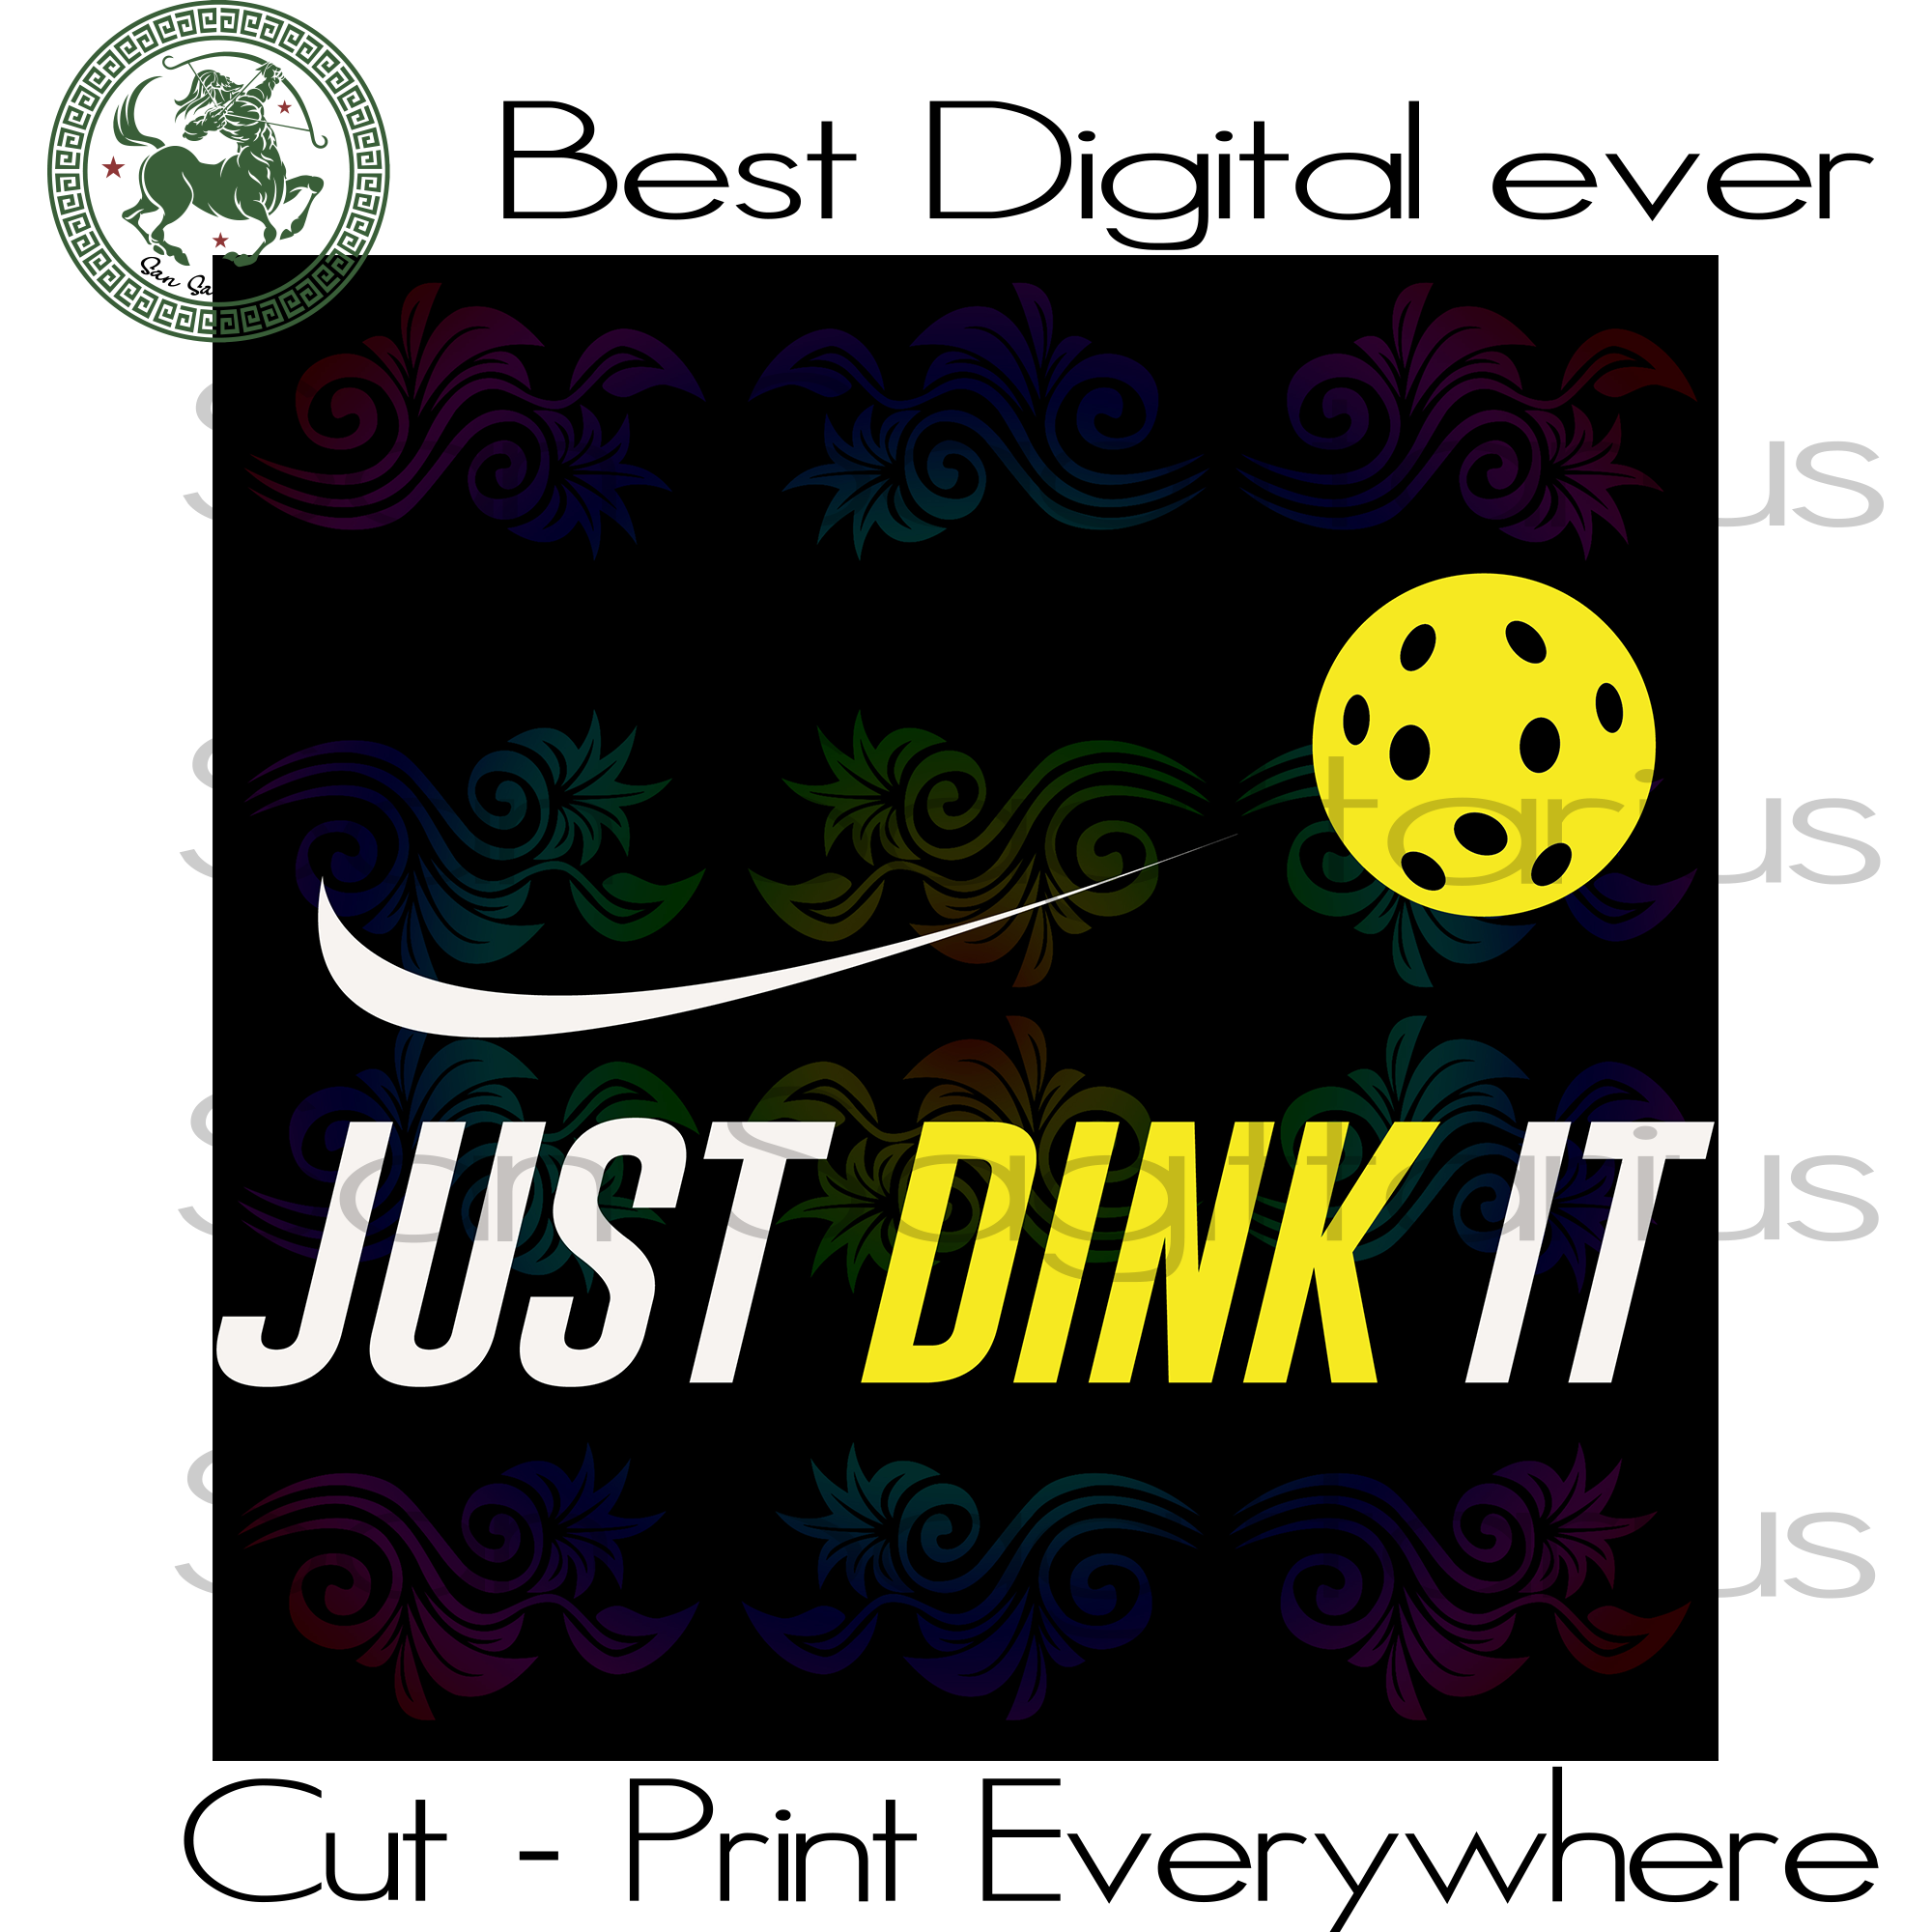 Nike Branch Just Drink it Funny Drinking, Nike Logo, Nike Shirt, Nike SVG Files For Cricut Silhouette Instant Download | San Sagittarius